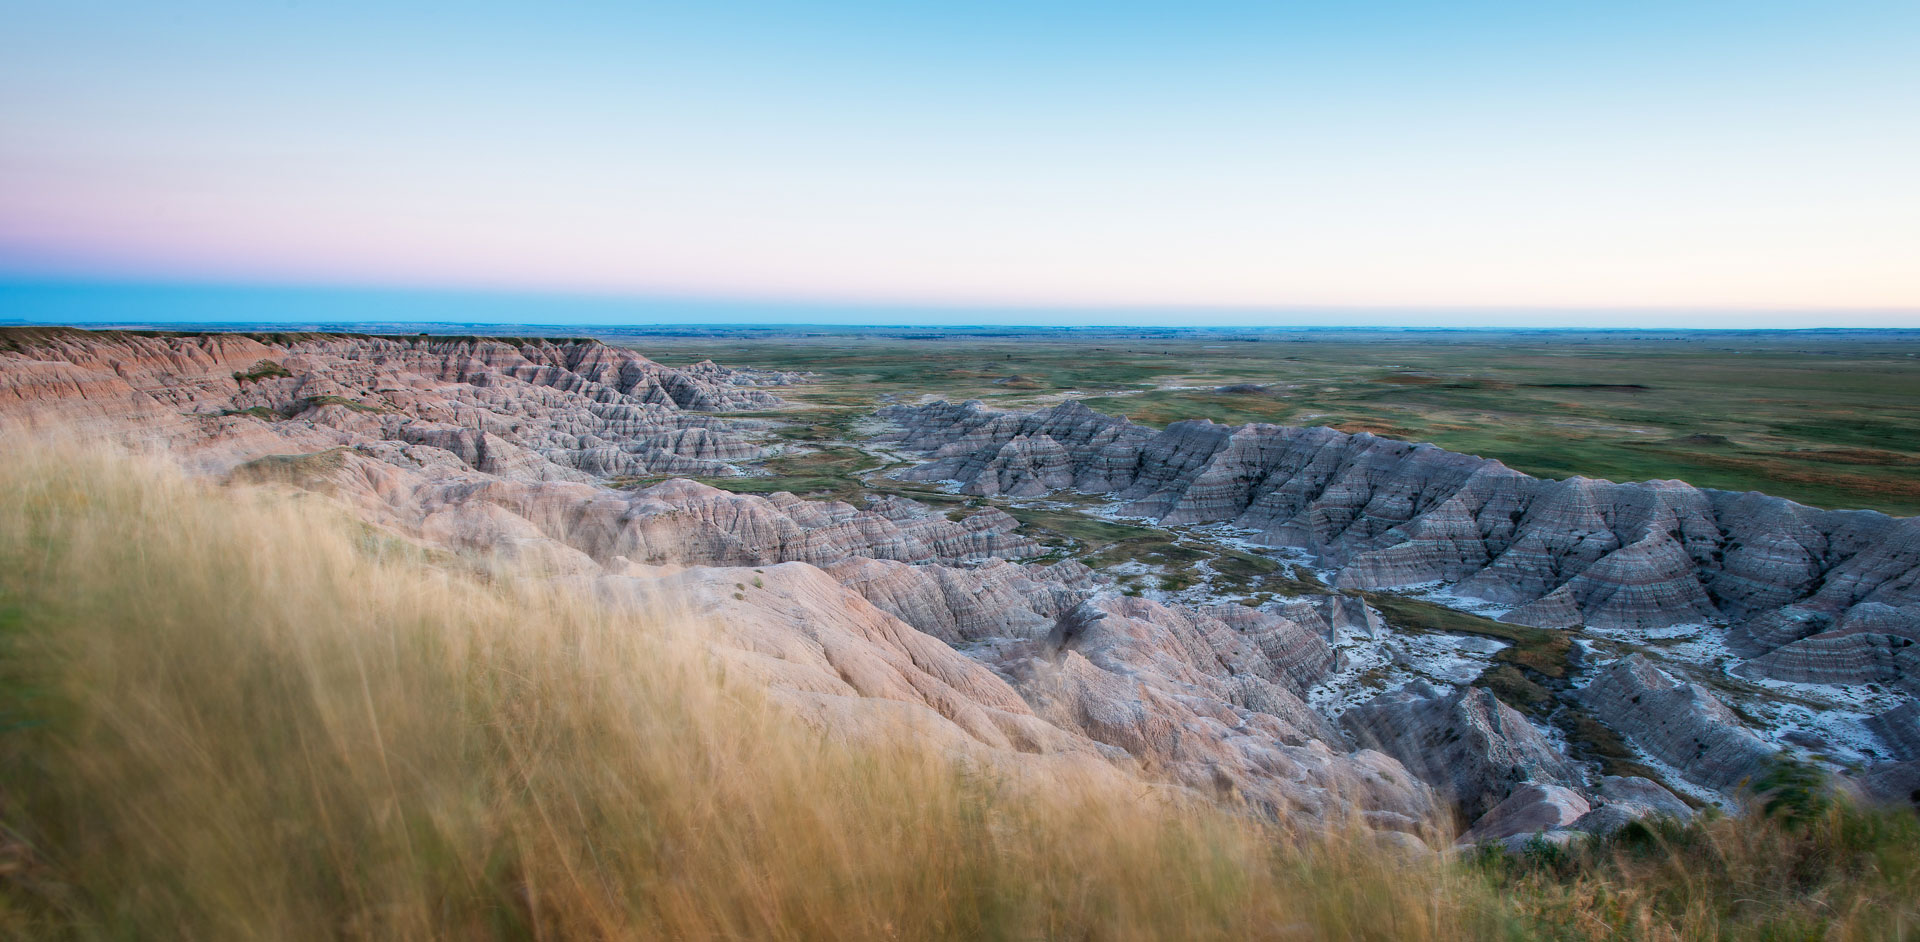 High Wind Sunset in Badlands National Park